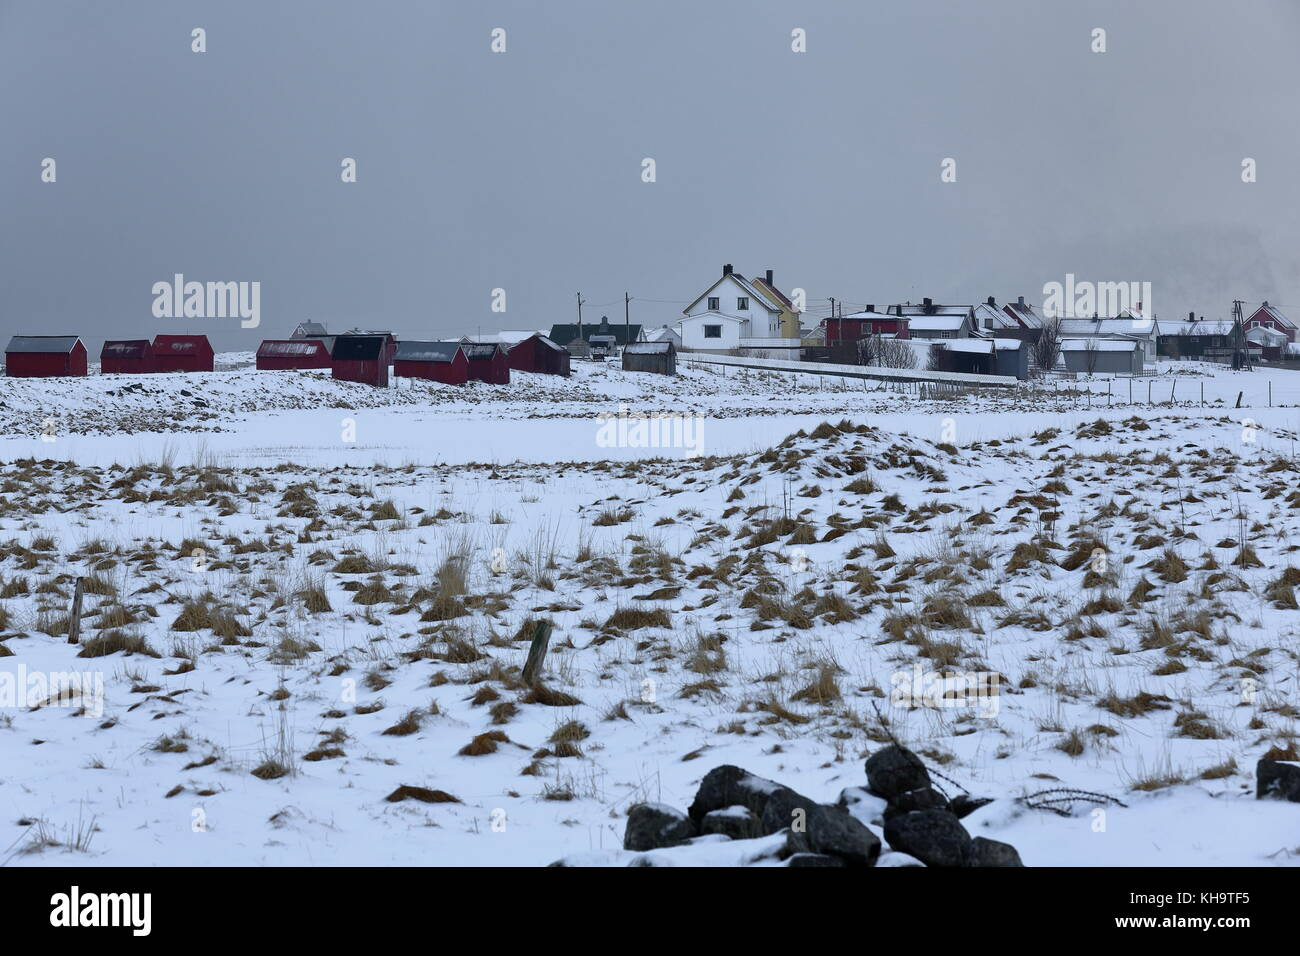 SE.-wards view from Eggum Natur Reserve to the rorbuer-fishing huts and cottages of Eggum village under heavy snowstorm - Stock Image